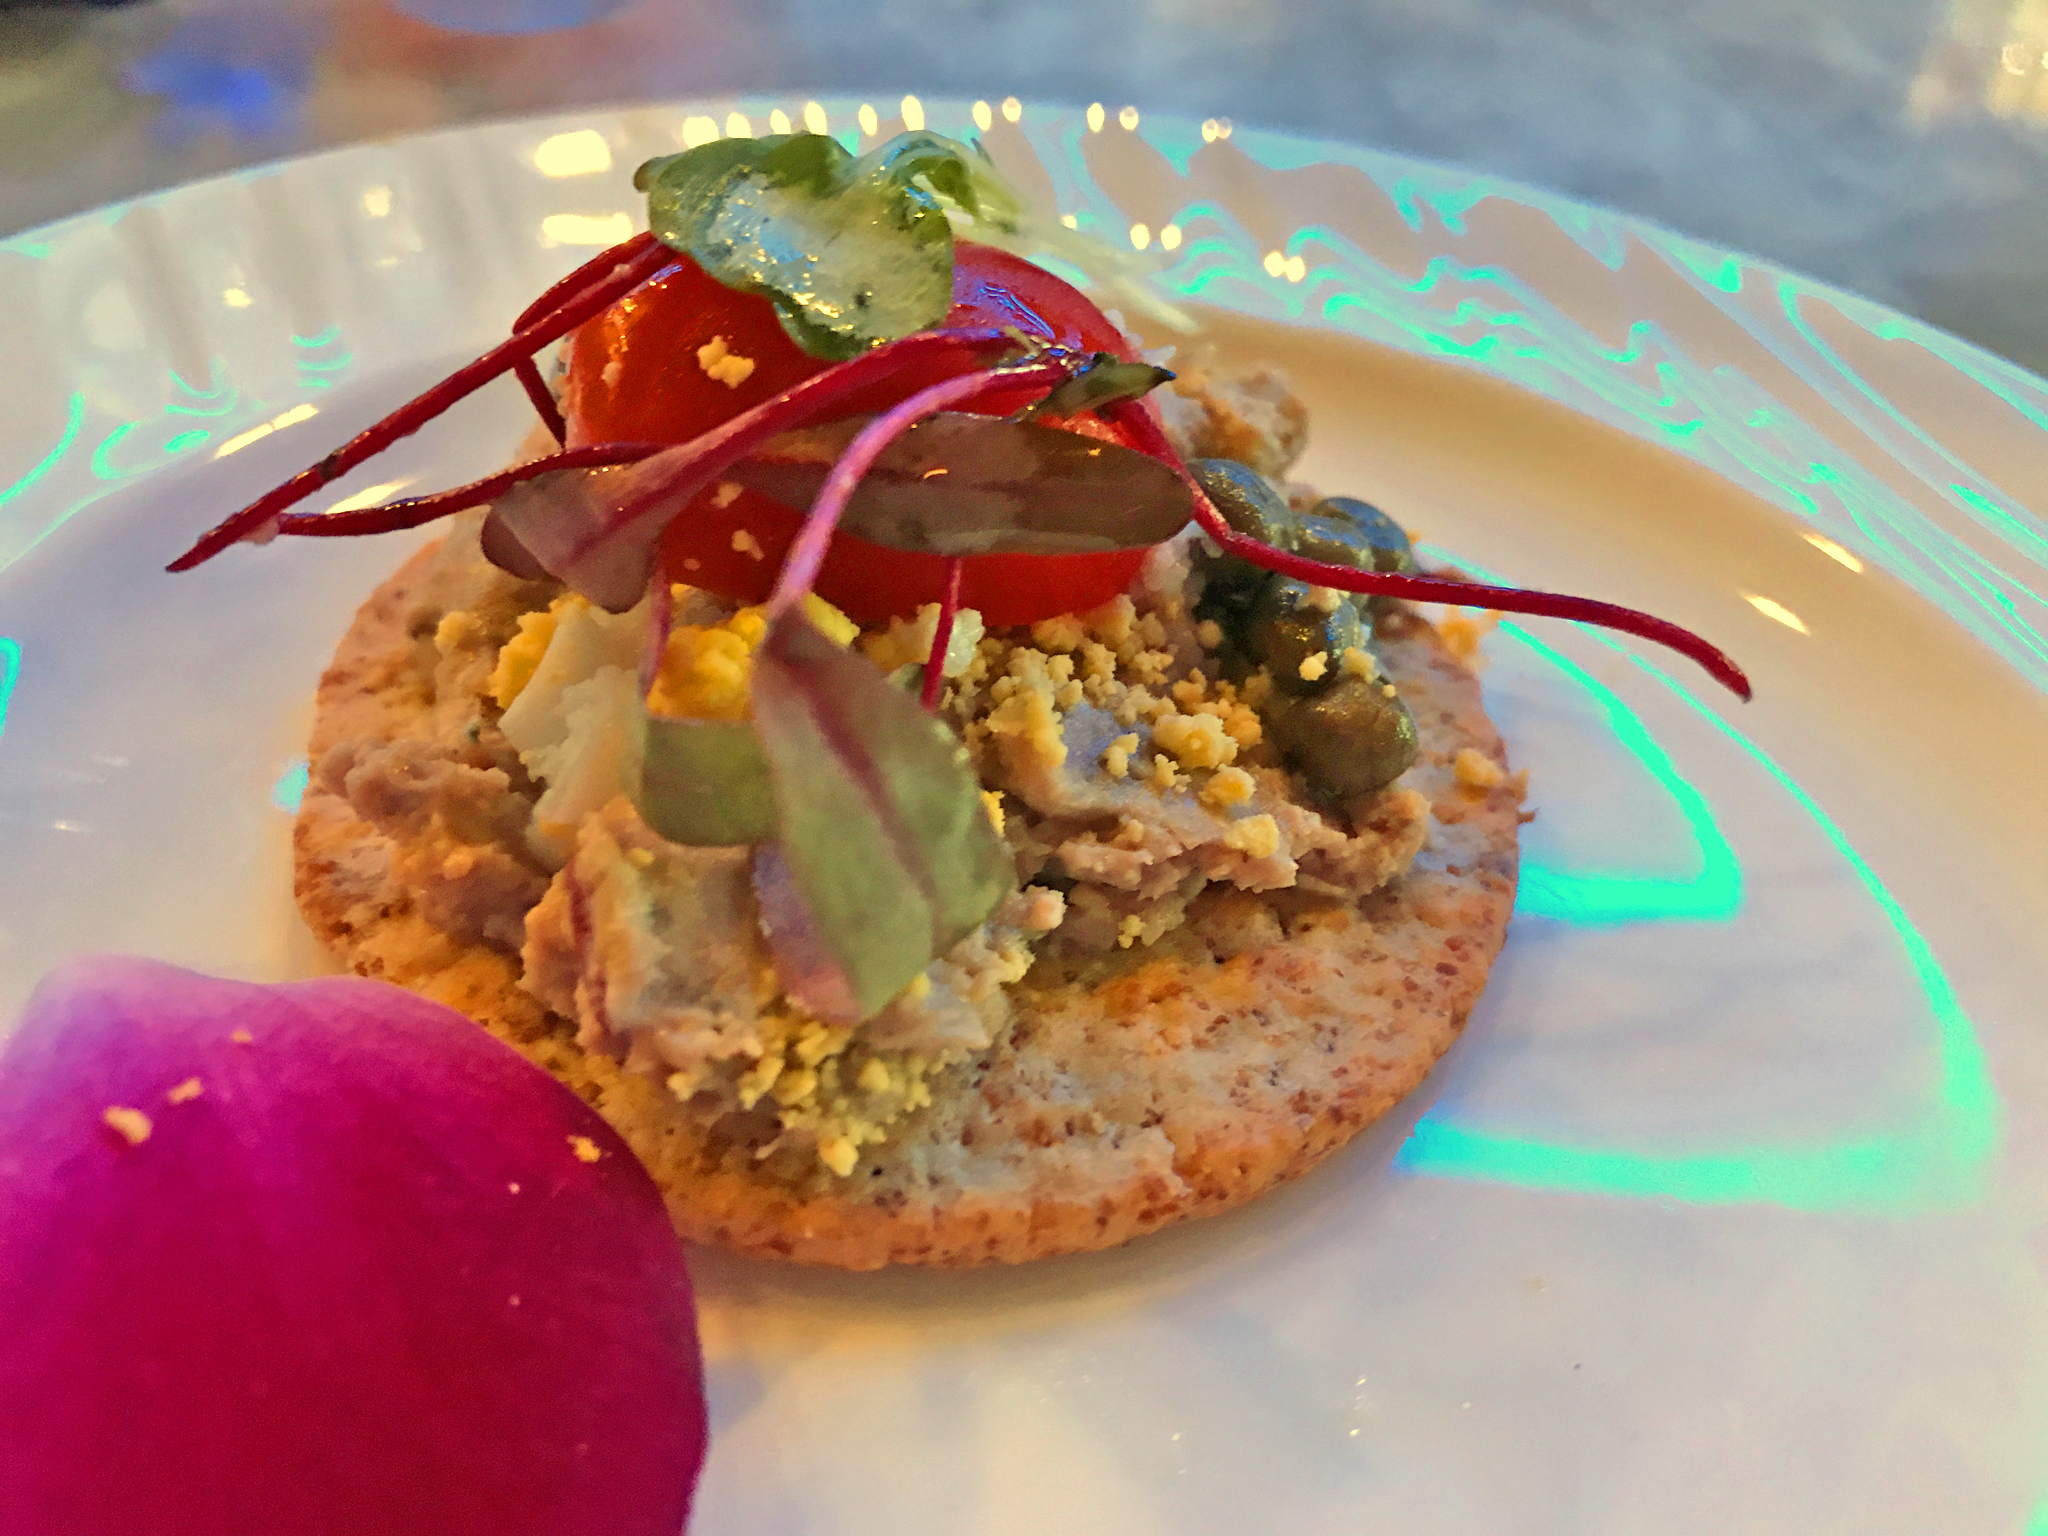 Duck Foie Gras Pâté Assembled on a Cracker